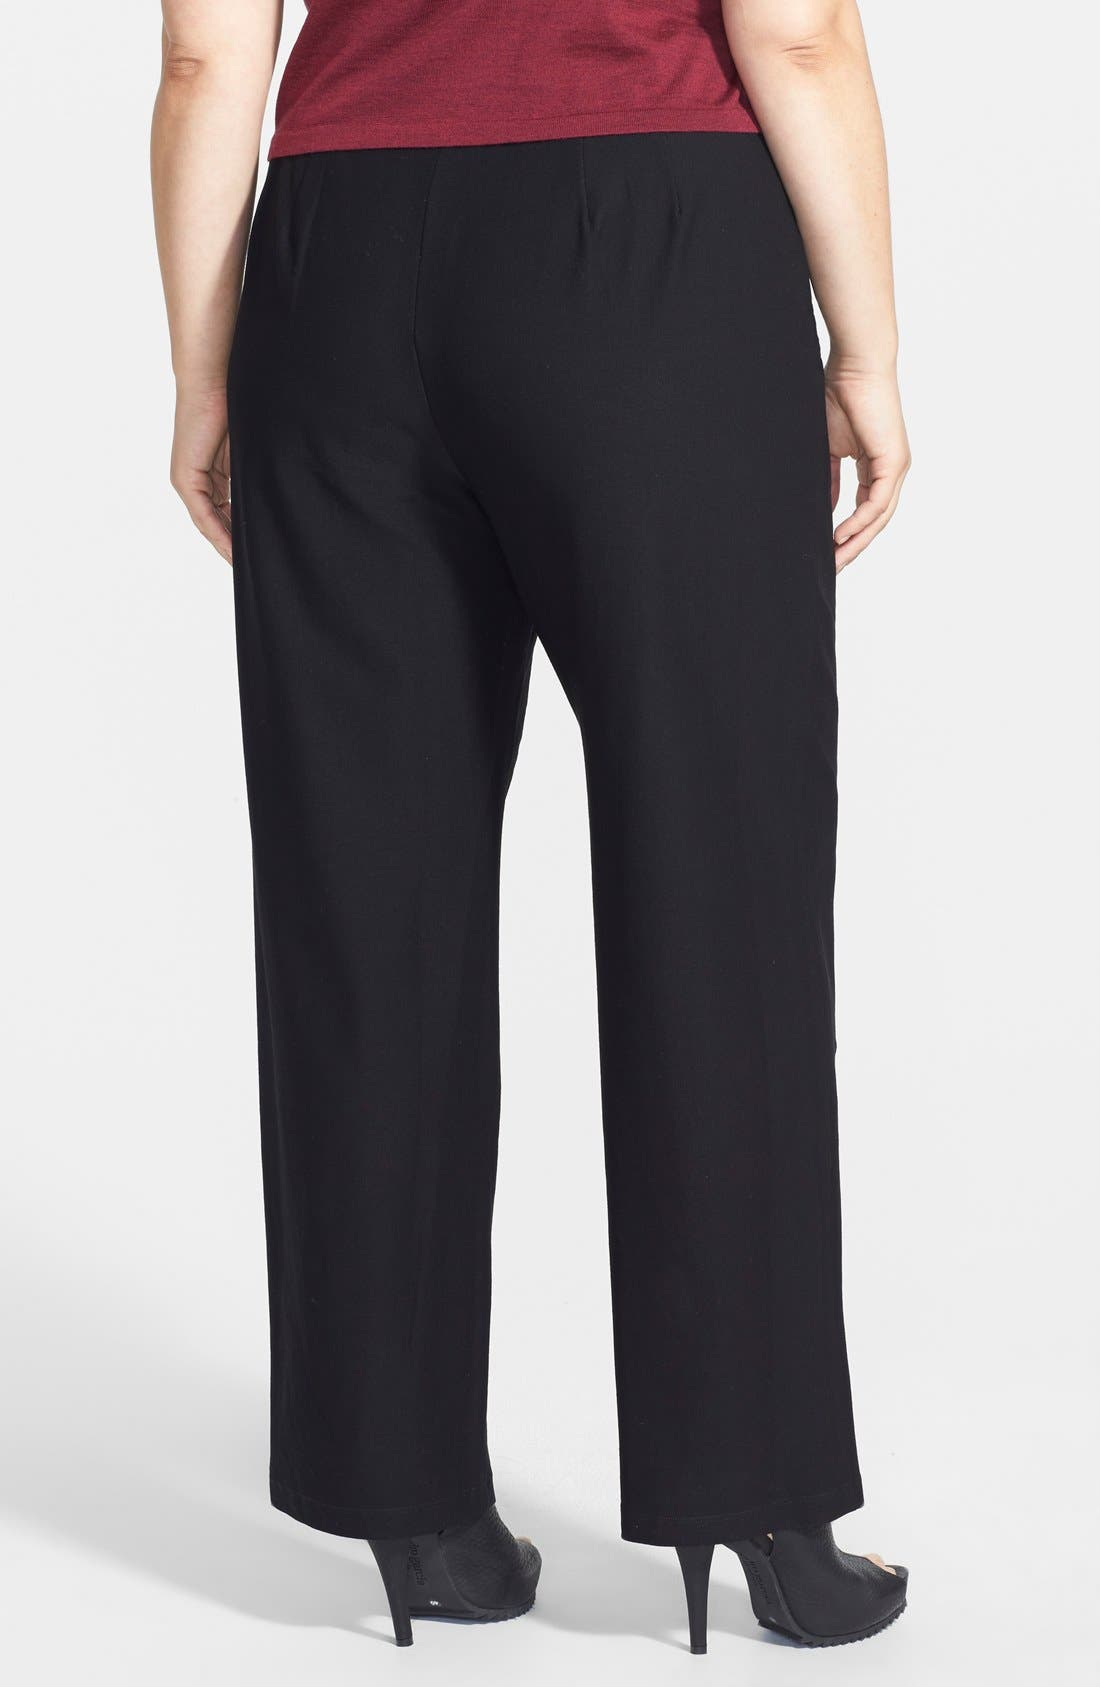 EILEEN FISHER, High Rise Straight Leg Crepe Pants, Alternate thumbnail 9, color, BLACK